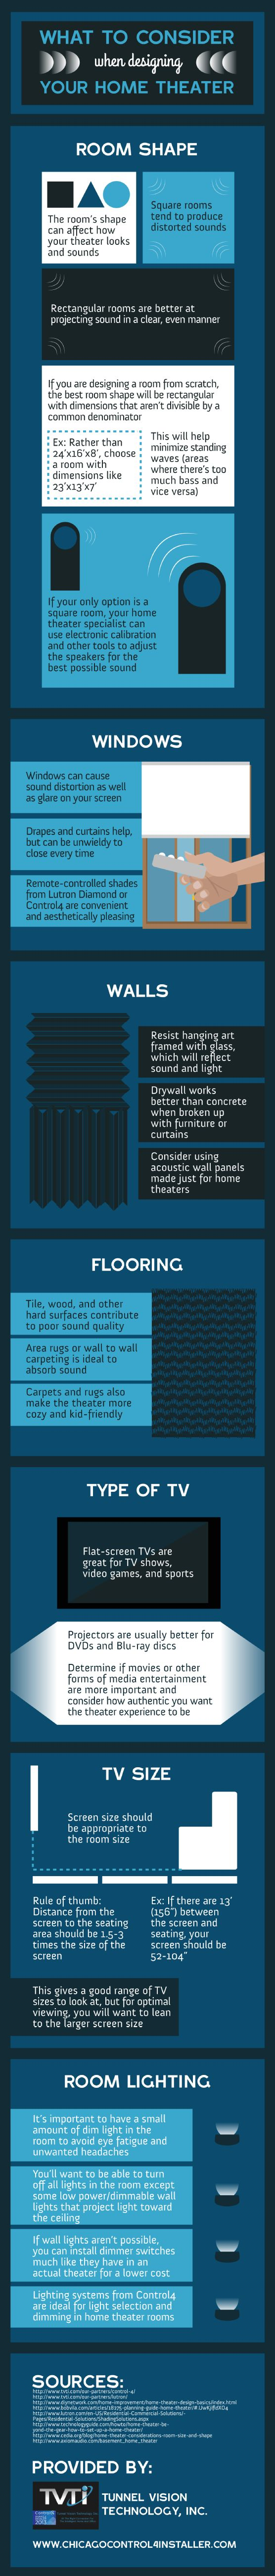 What To Consider When Designing Your Home Theater #HomeTheater #Home  #infographic More